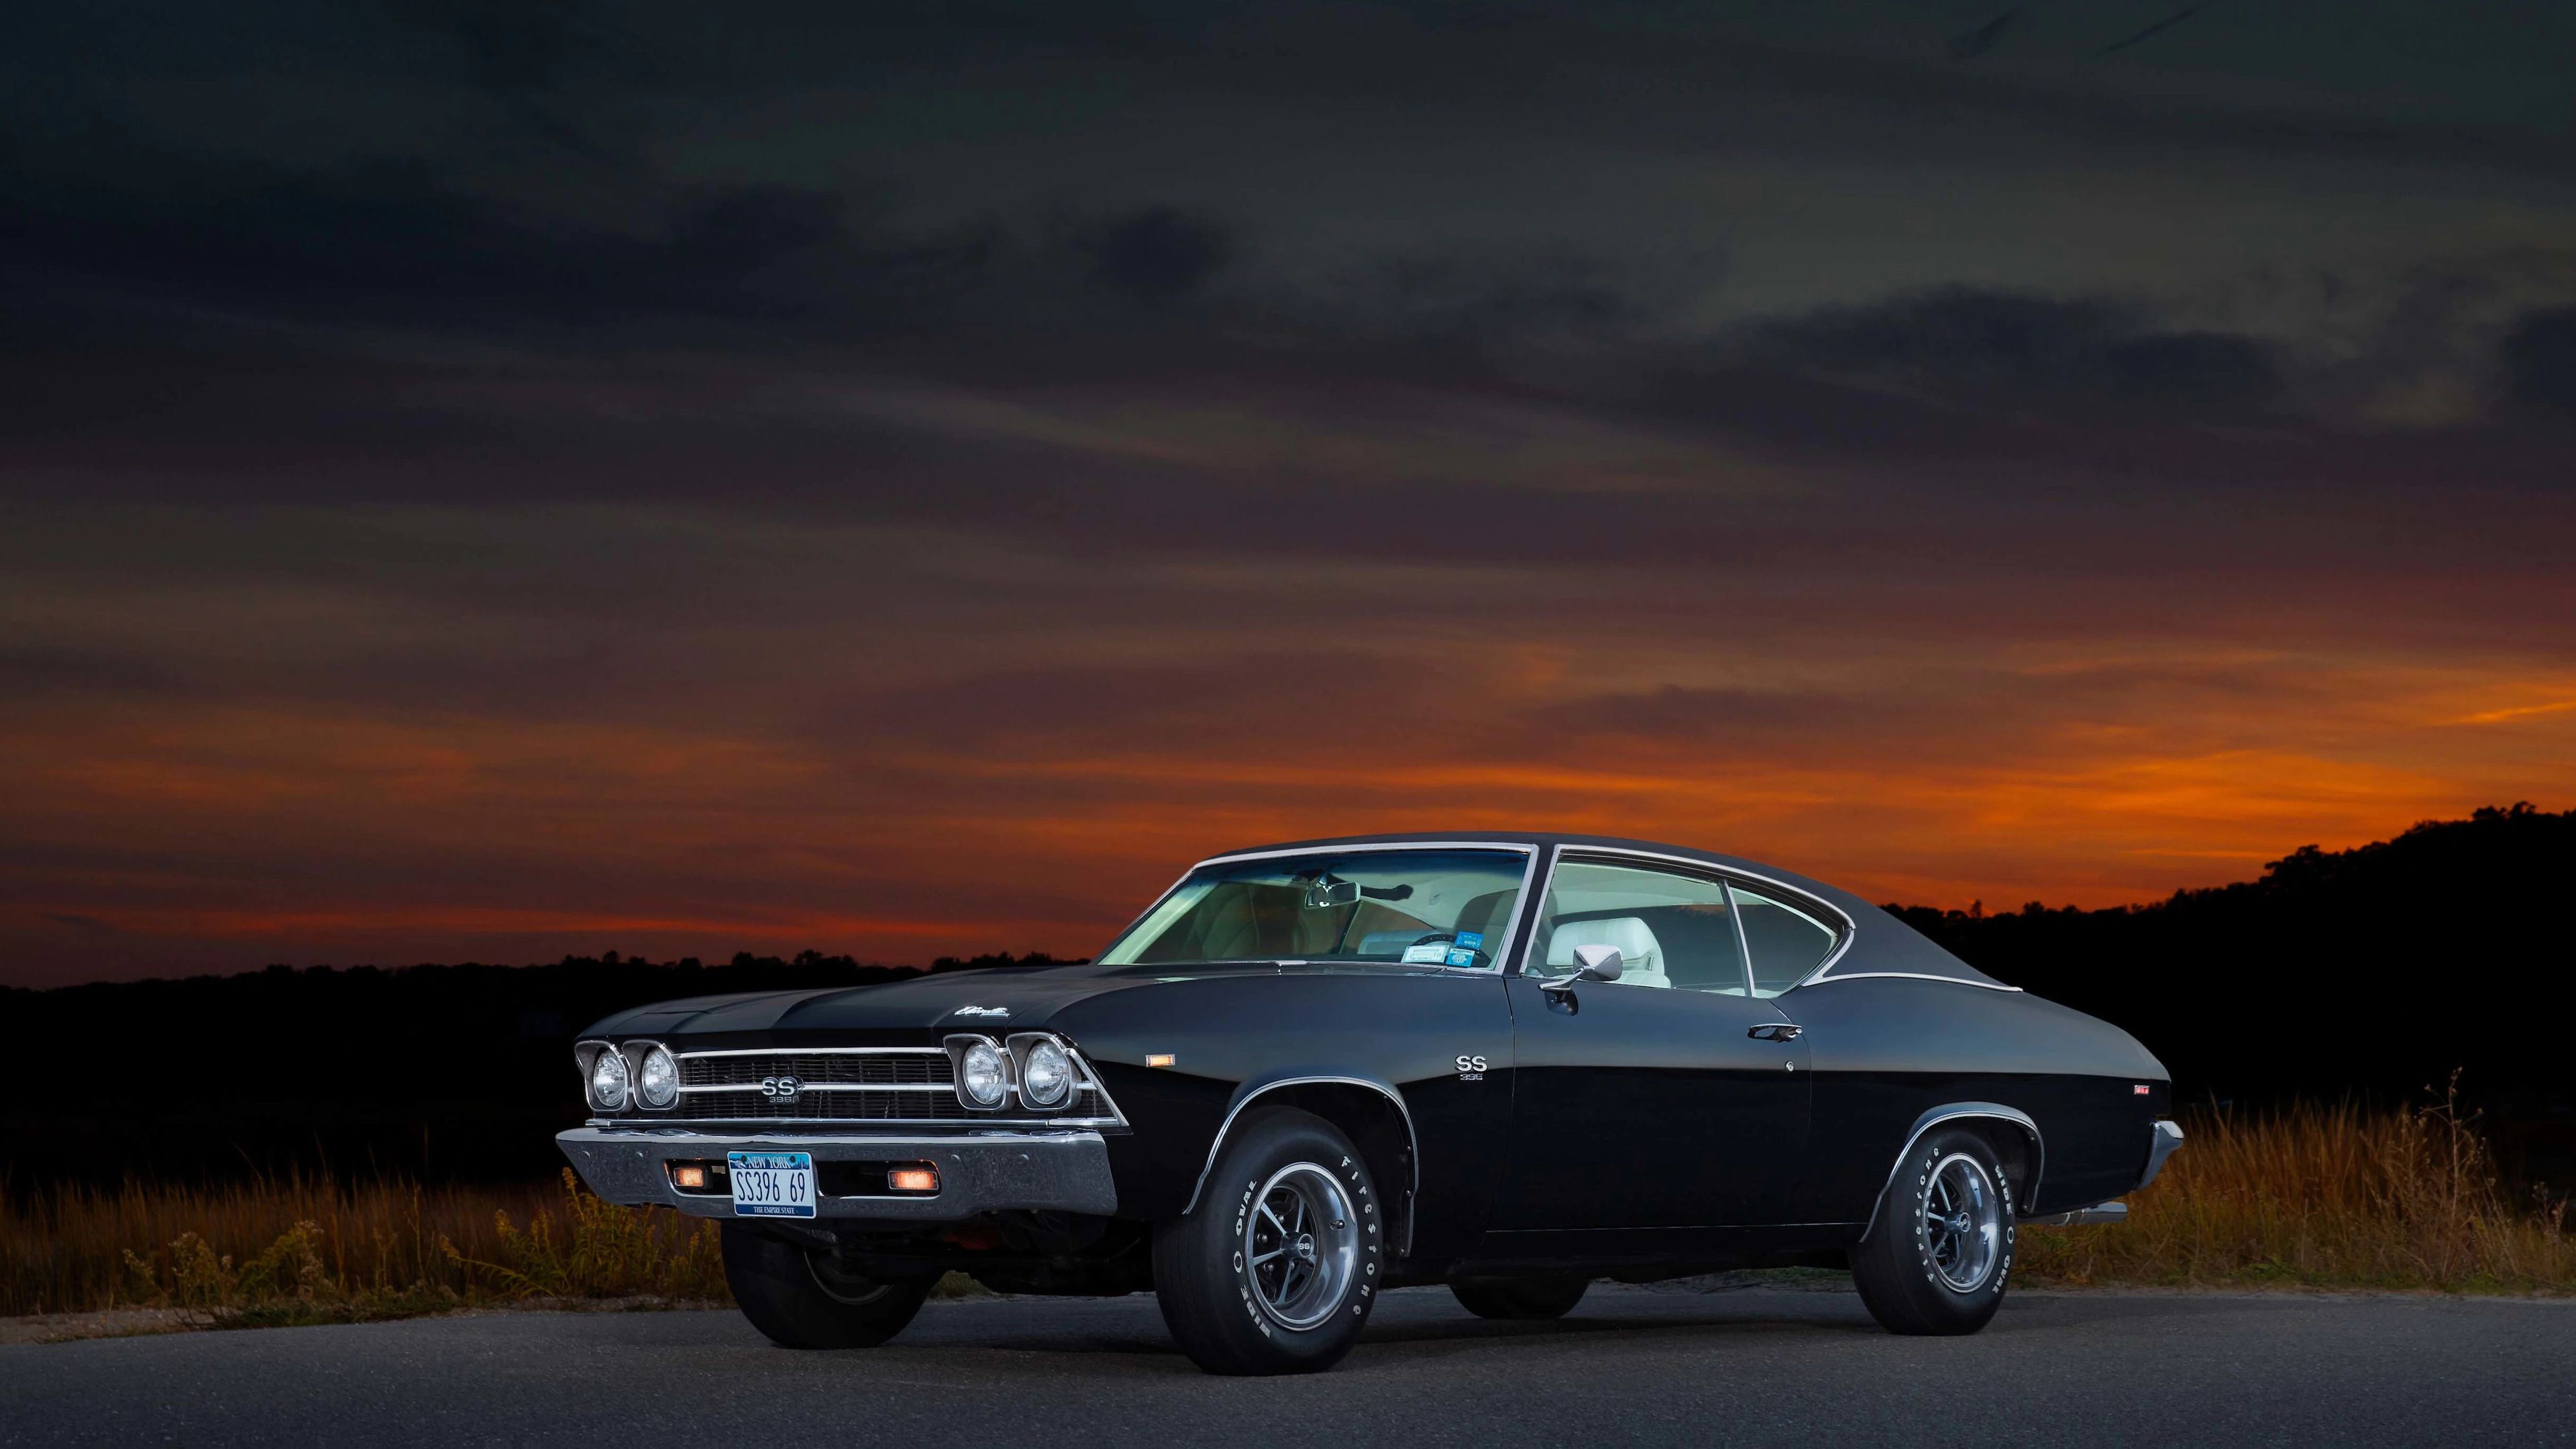 1969 Chevelle Wallpapers Top Free 1969 Chevelle